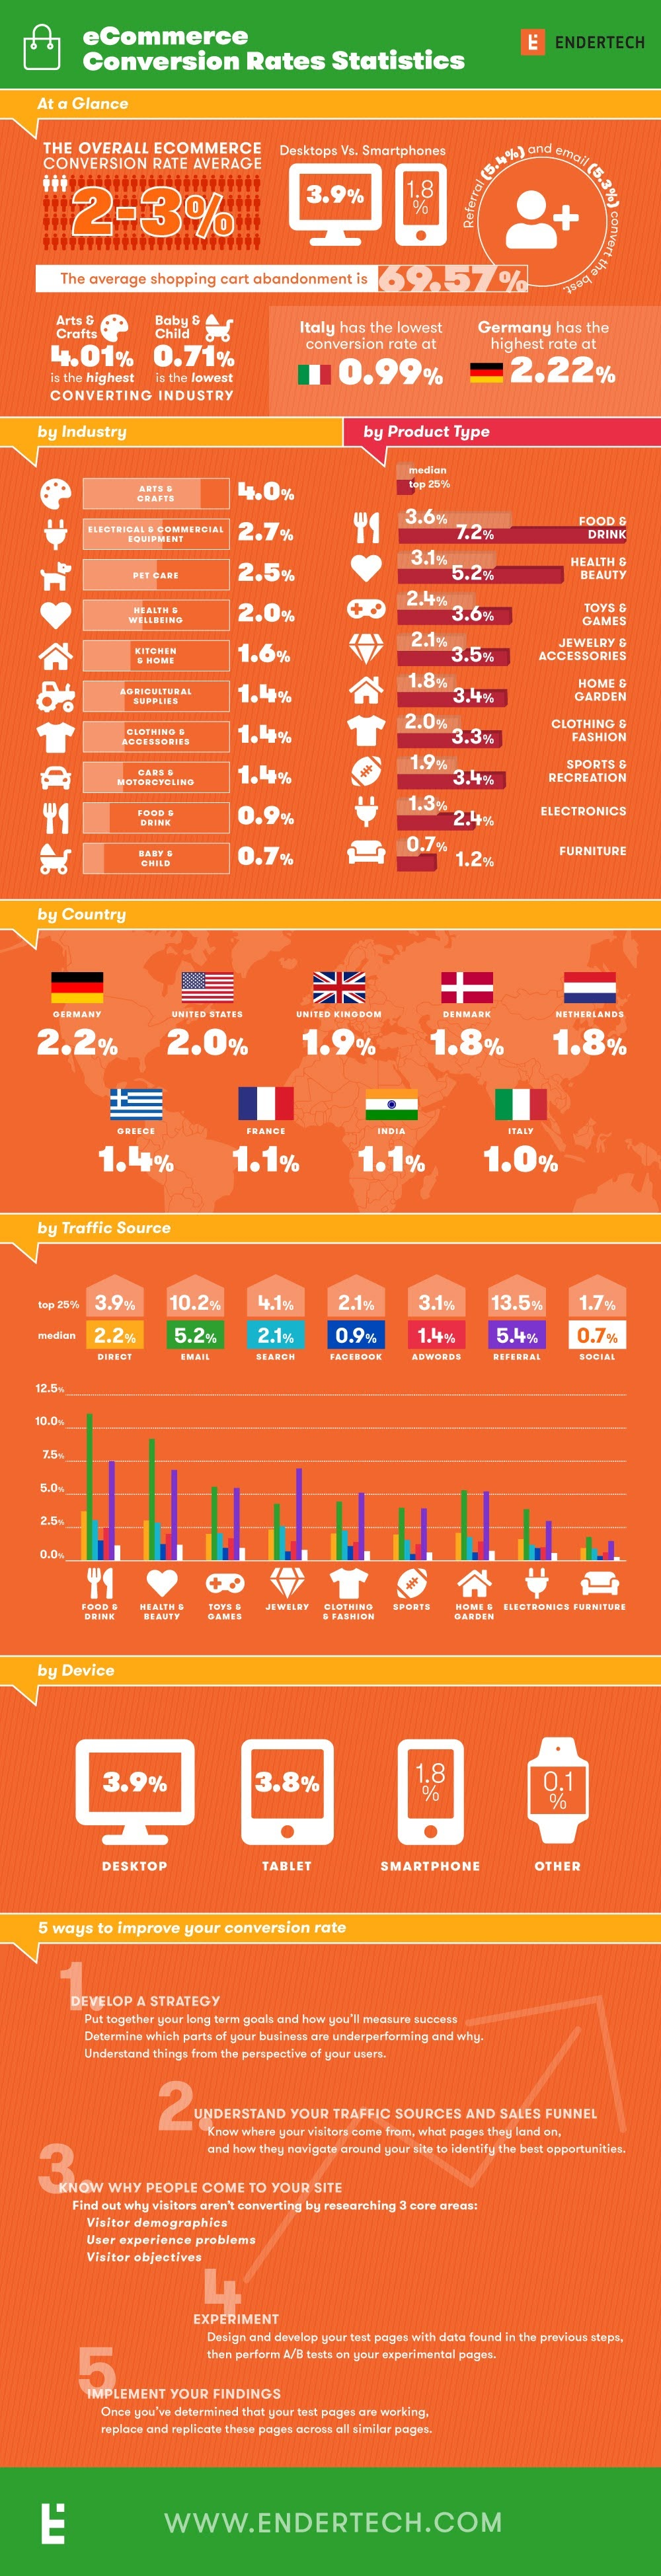 What's the Average eCommerce Conversion Rate? #infographic